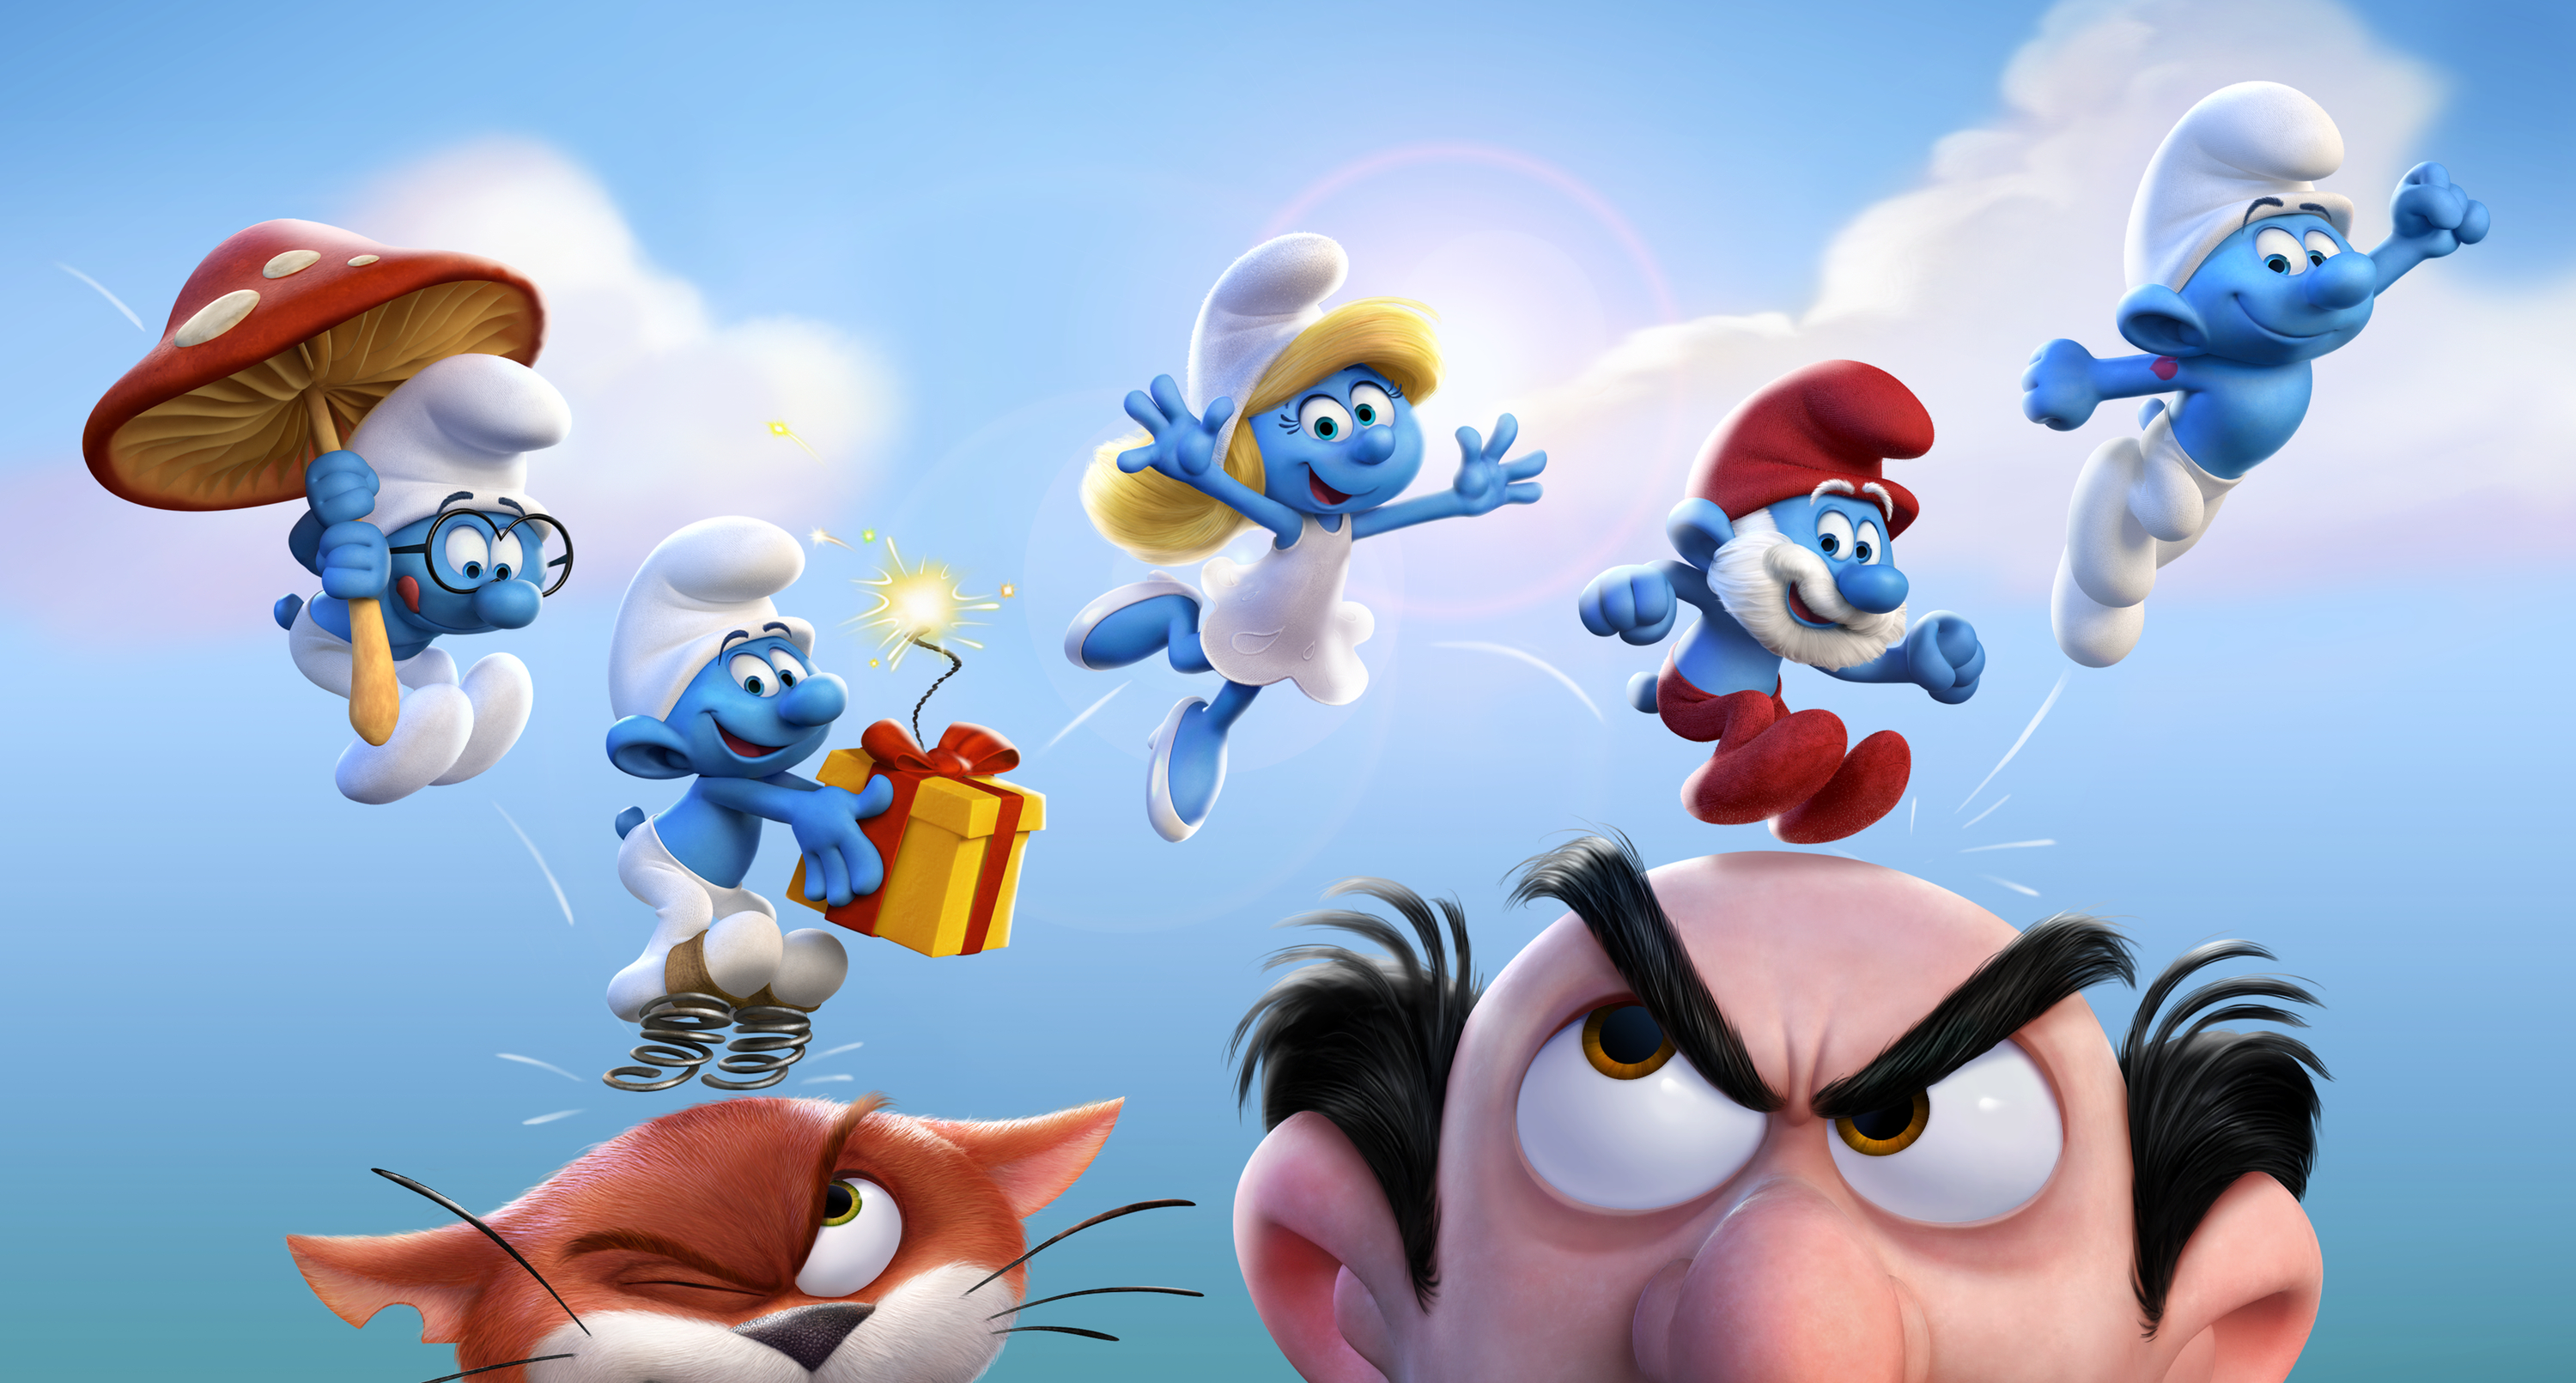 SMURFS: THE LOST VILLAGE Trailer  #SmurfsMovie